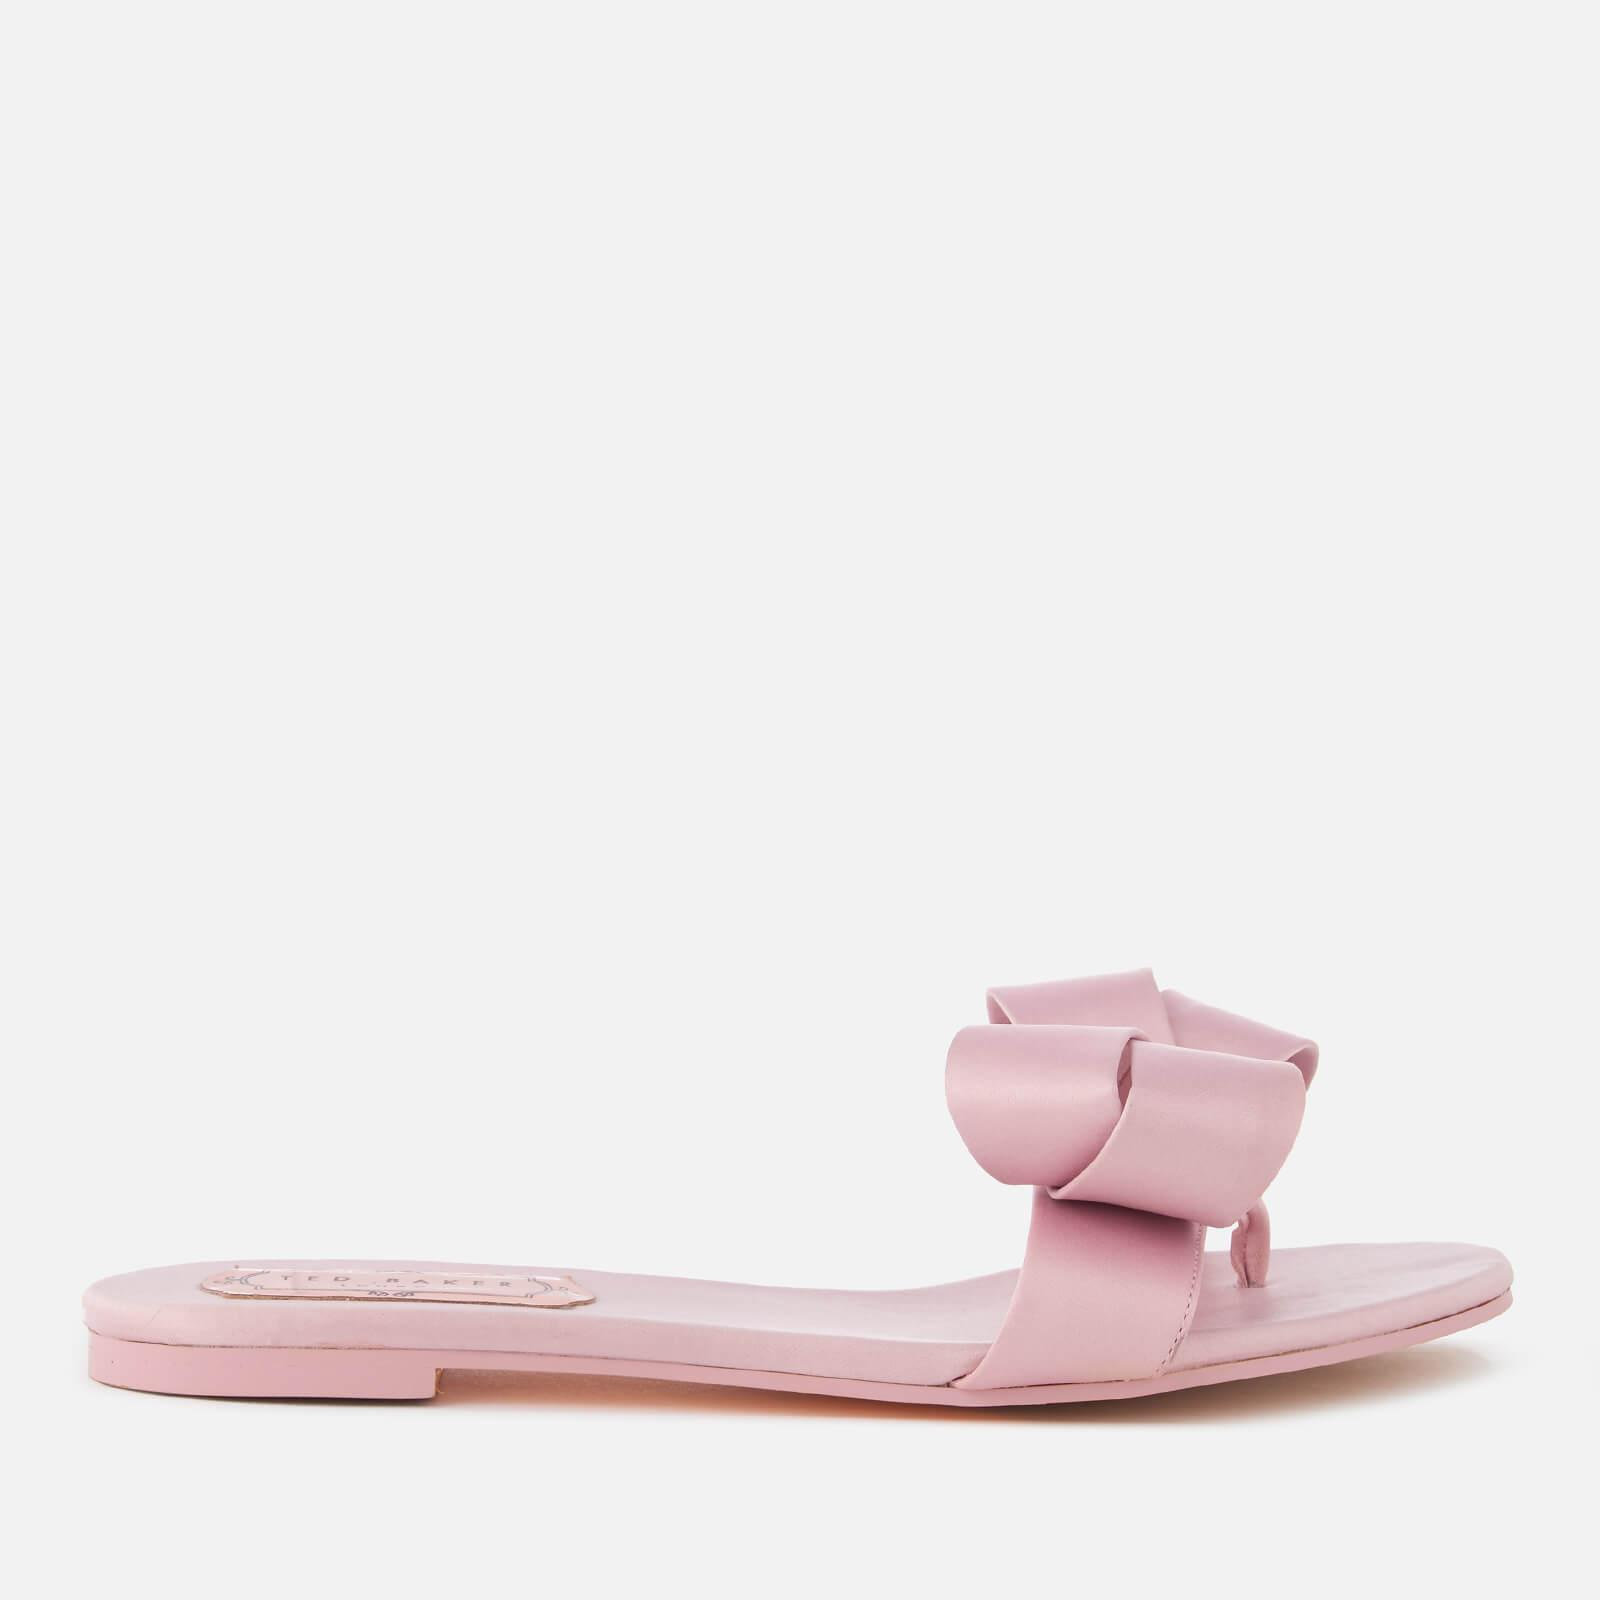 3019bcc292ee11 Lyst - Ted Baker Beauita Satin Bow Sandals in Pink